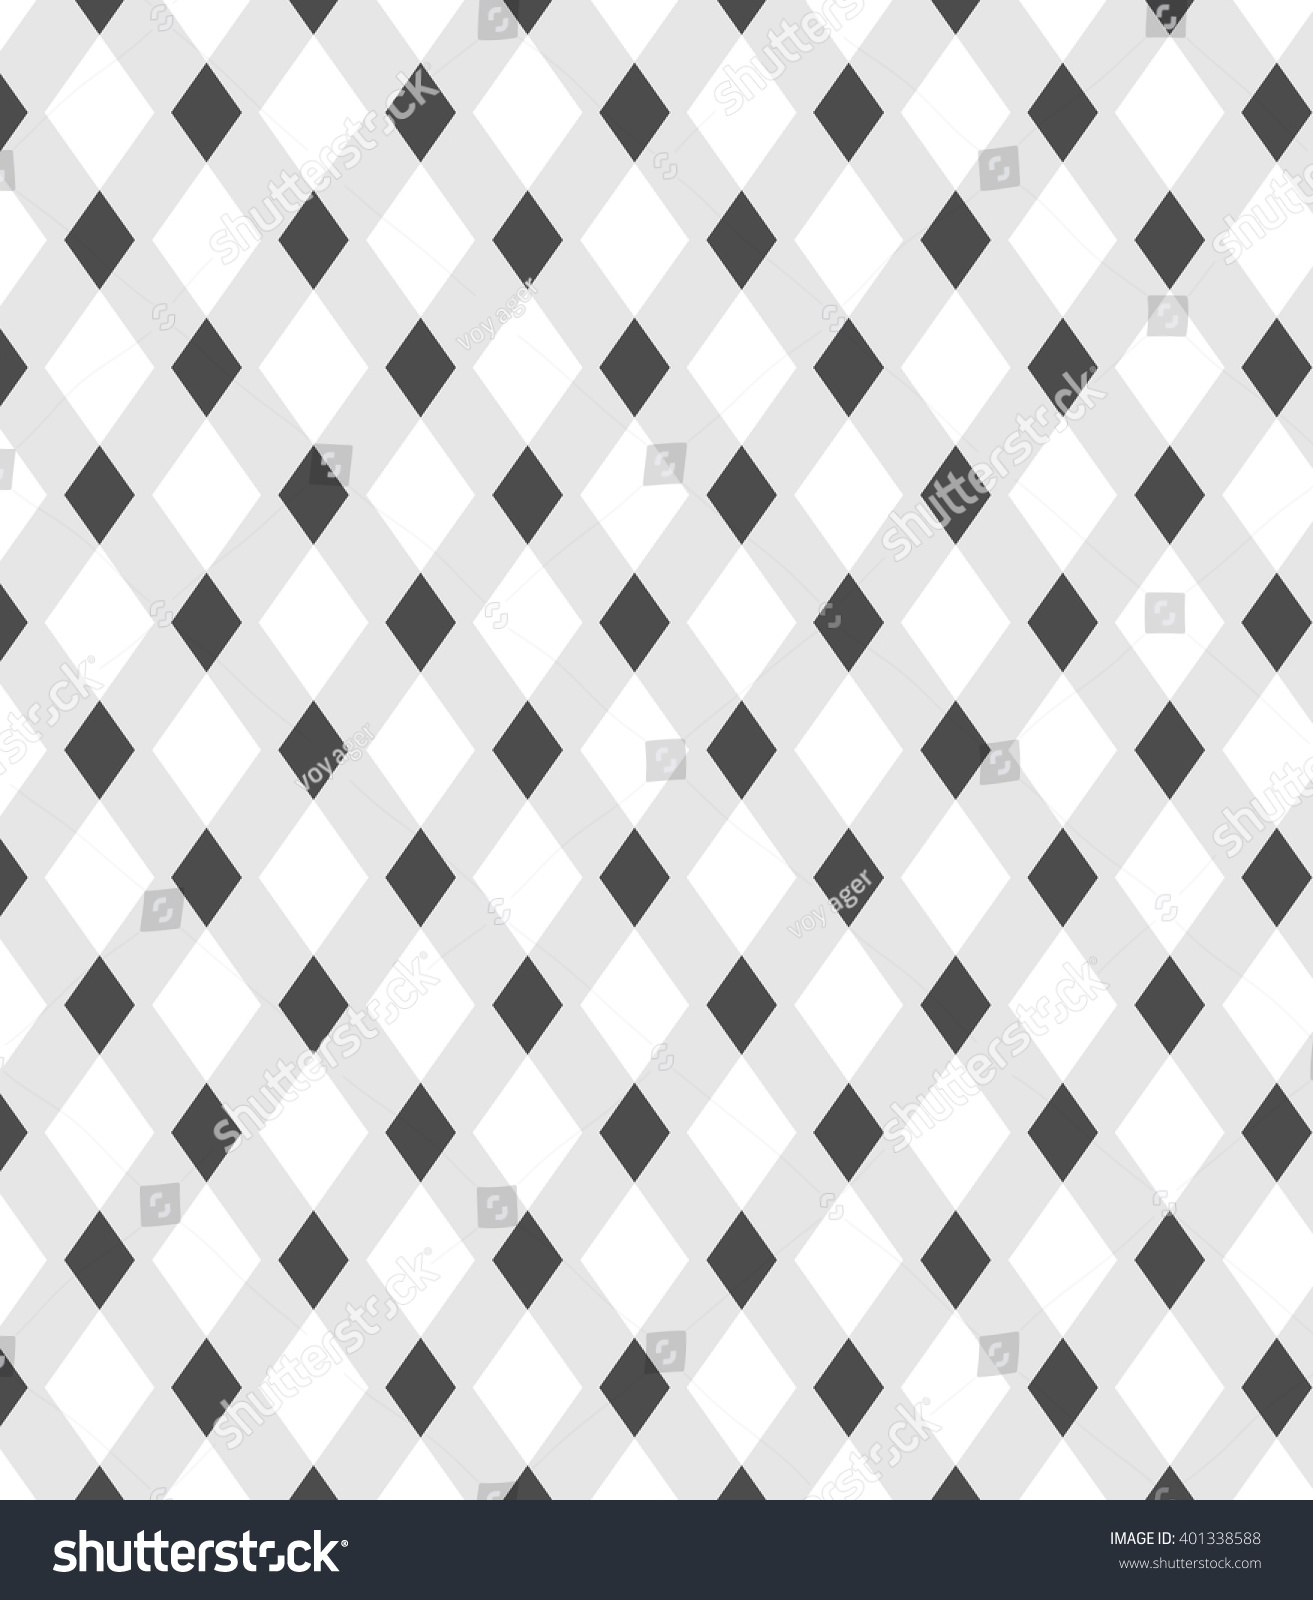 Off white diagonal striped plastic texture picture free photograph - Modern Stylish Texture Repeating Geometric Tiles From Striped Triangles